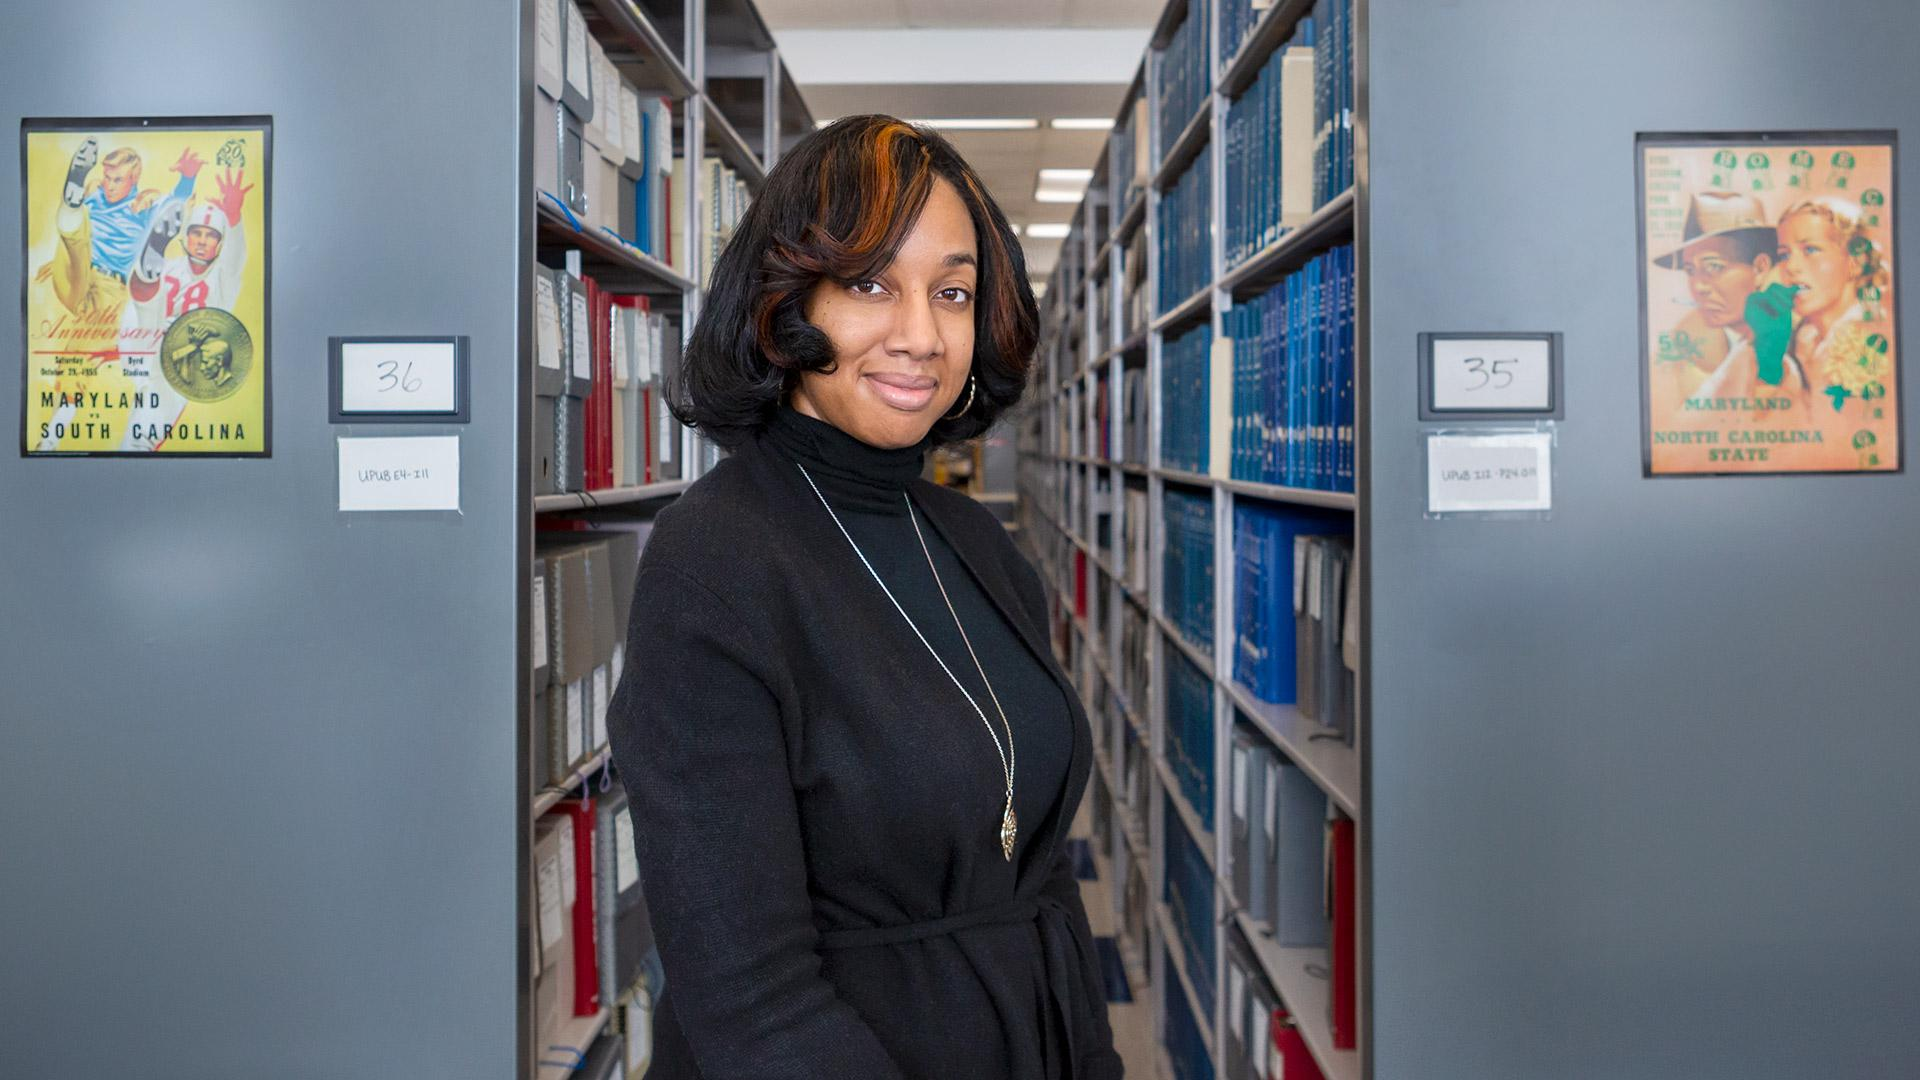 Lae'l Hughes-Watkins looks forward to documenting the role of students at UMD in her new position as university archivist. (Photo by Stephanie S. Cordle)